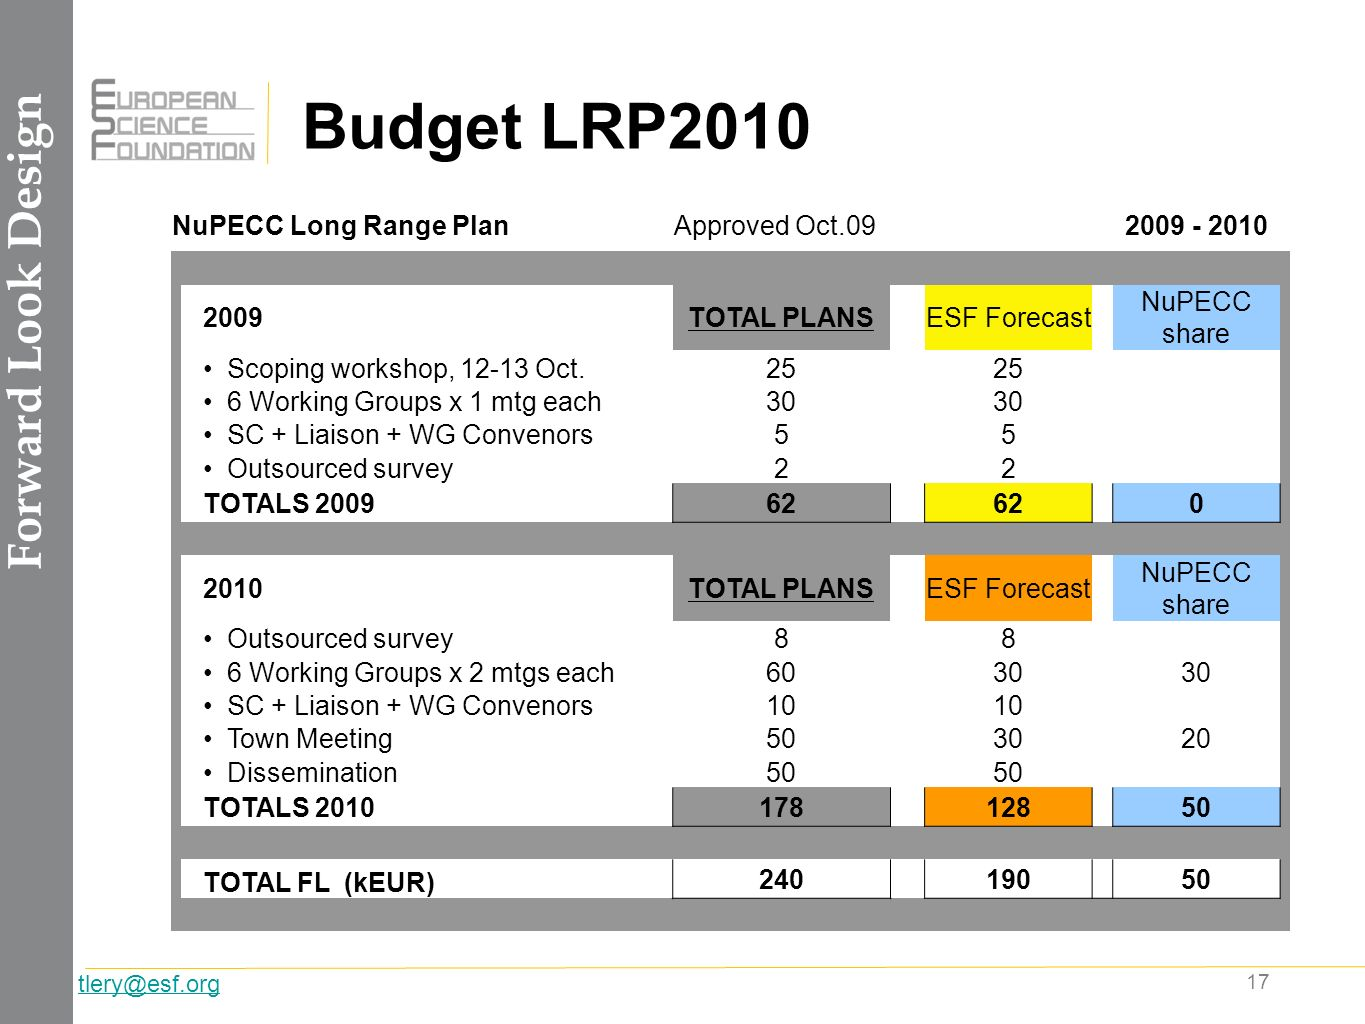 17 tlery@esf.org Budget LRP2010 Forward Look Design NuPECC Long Range PlanApproved Oct.092009 - 2010 2009TOTAL PLANSESF Forecast NuPECC share Scoping workshop, 12-13 Oct.25 6 Working Groups x 1 mtg each30 SC + Liaison + WG Convenors55 Outsourced survey22 TOTALS 200962 0 2010TOTAL PLANSESF Forecast NuPECC share Outsourced survey88 6 Working Groups x 2 mtgs each6030 SC + Liaison + WG Convenors10 Town Meeting503020 Dissemination50 TOTALS 201017812850 TOTAL FL (kEUR) 24019050